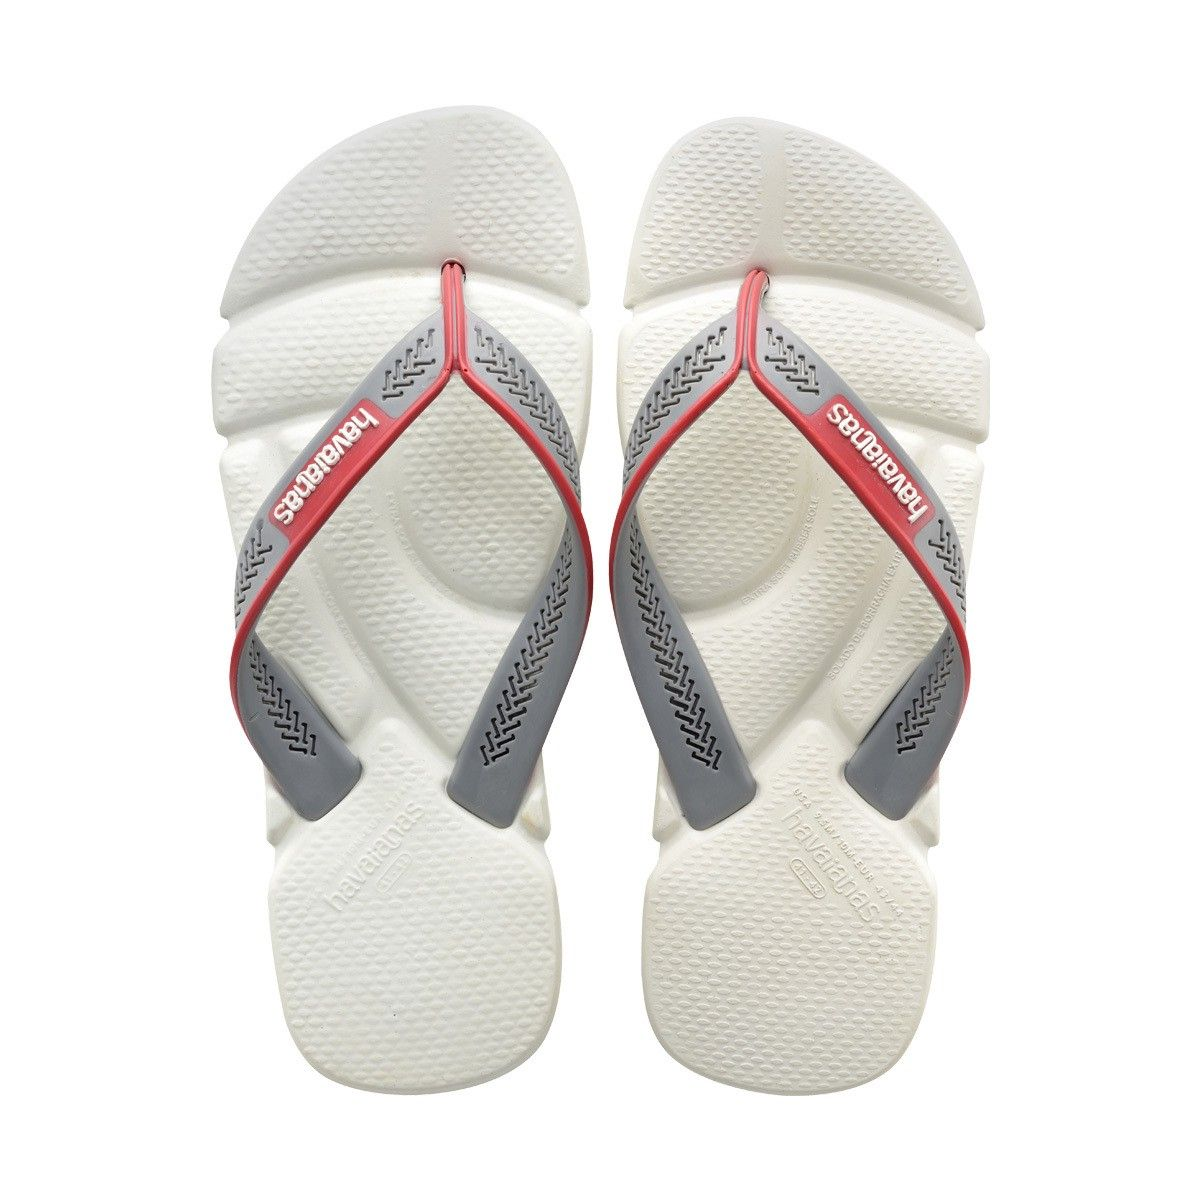 HAVAIANAS POWER SANDAL WHITE/GREY/RED. #havaianas #shoes #all